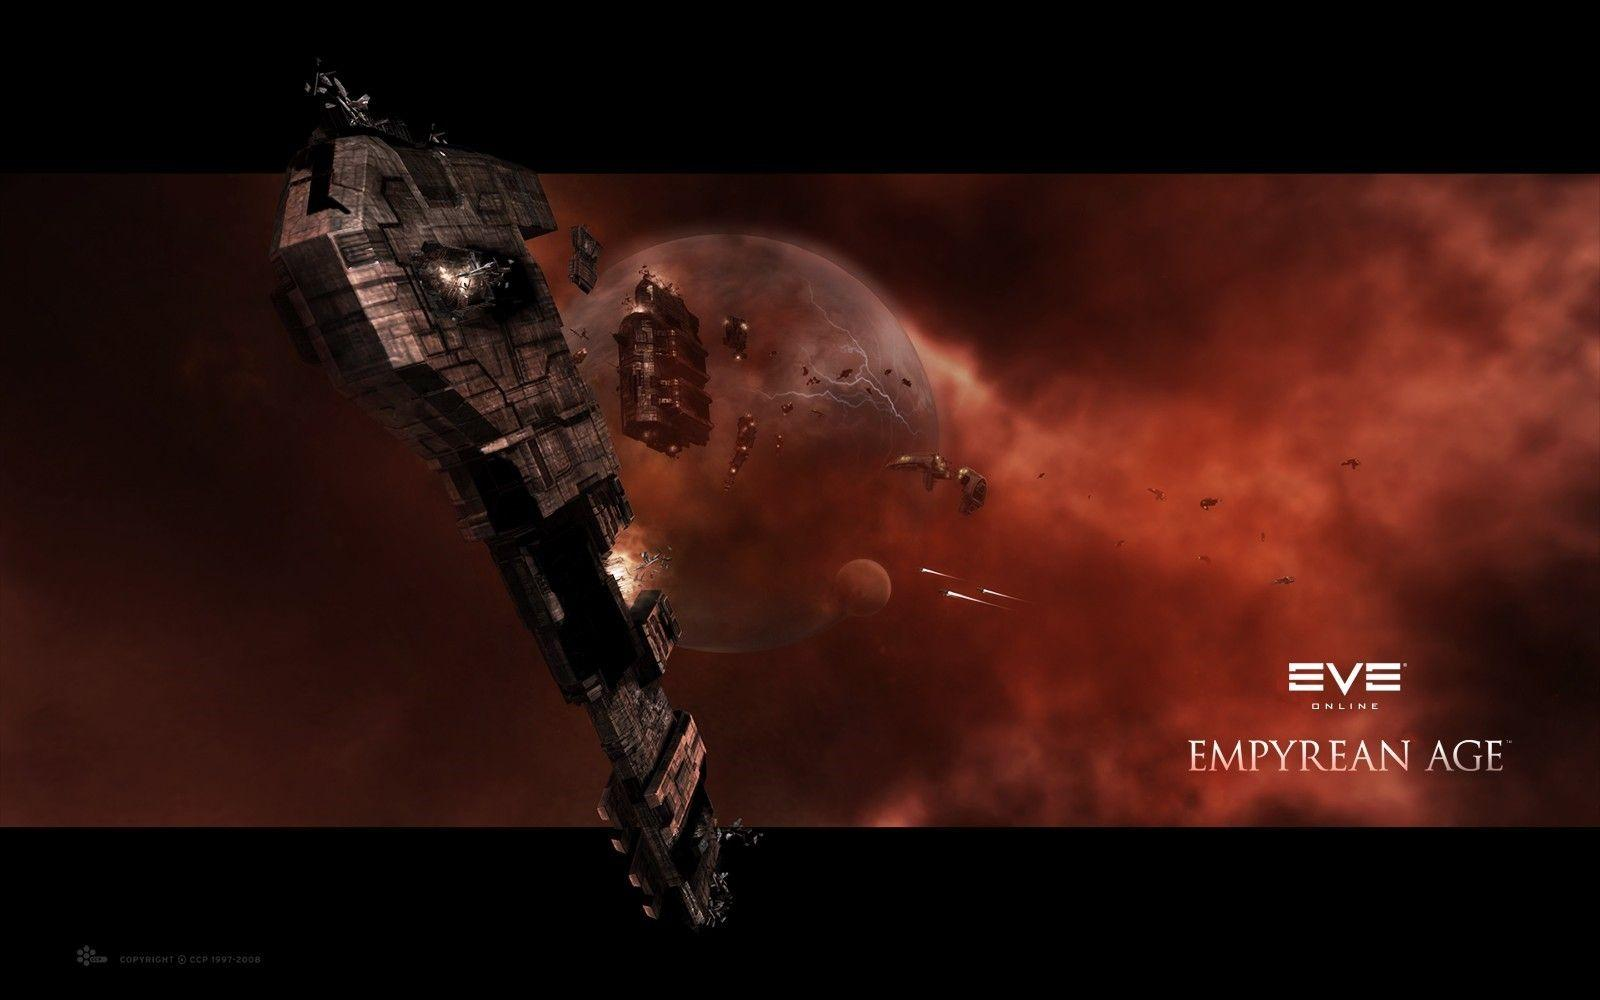 eve online space spaceship minmatar wallpapers and backgrounds